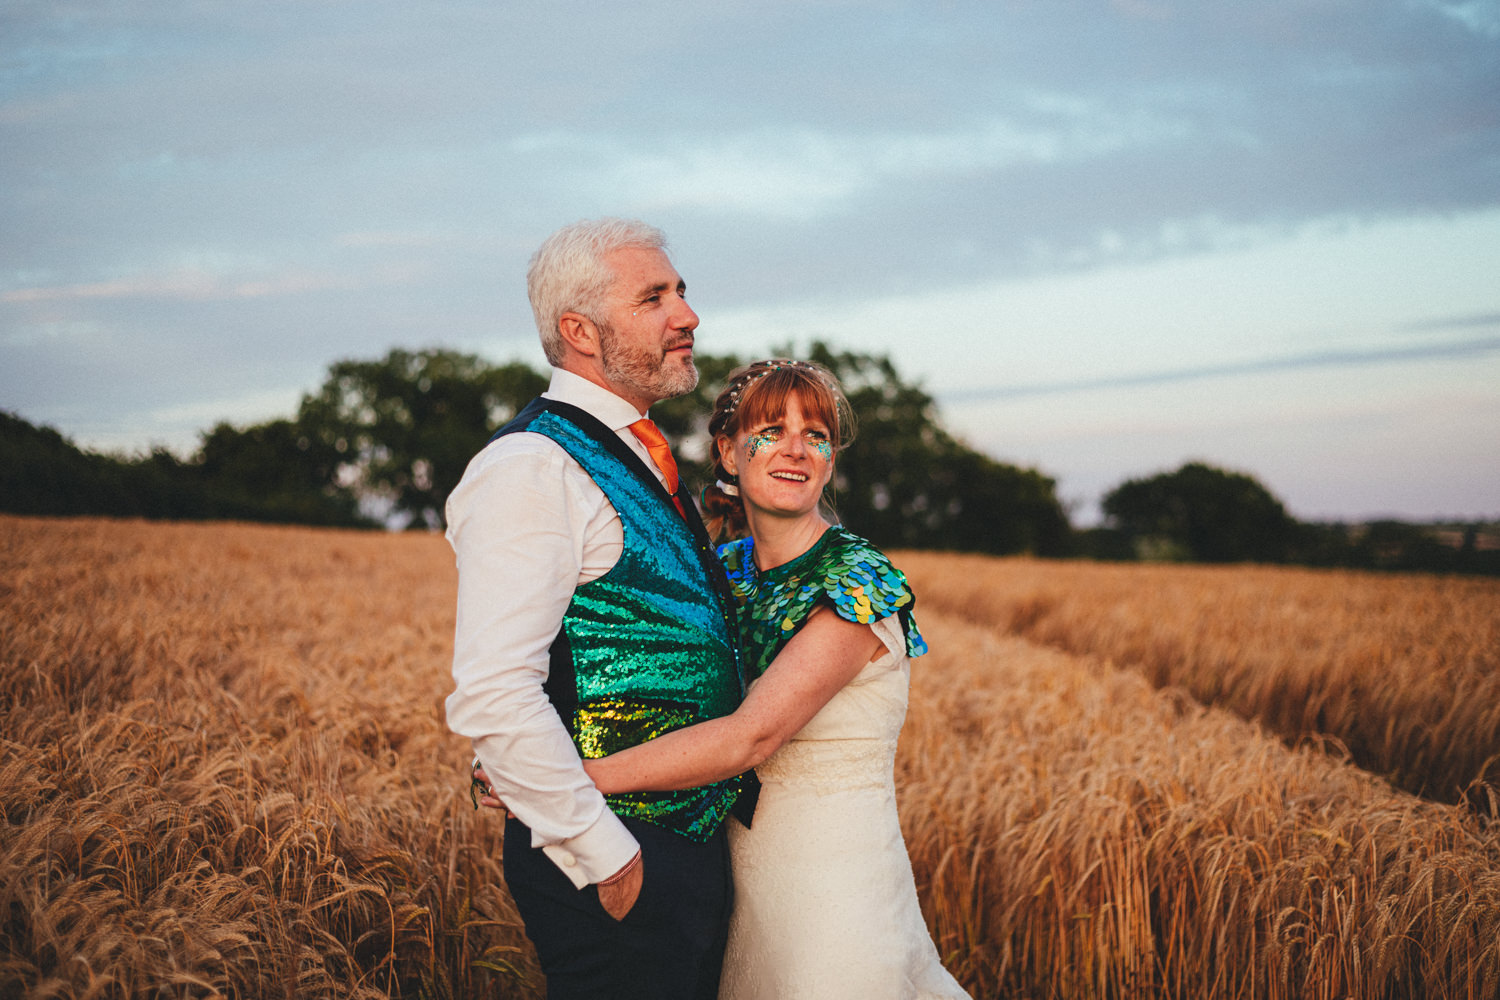 bride and groom, portraits, sequinned coats, alternative wedding, devon wedding, glitter, barley, barley field, totnes wedding, devon wedding photographer, summer, harvest, Holsome Park Wedding Photography